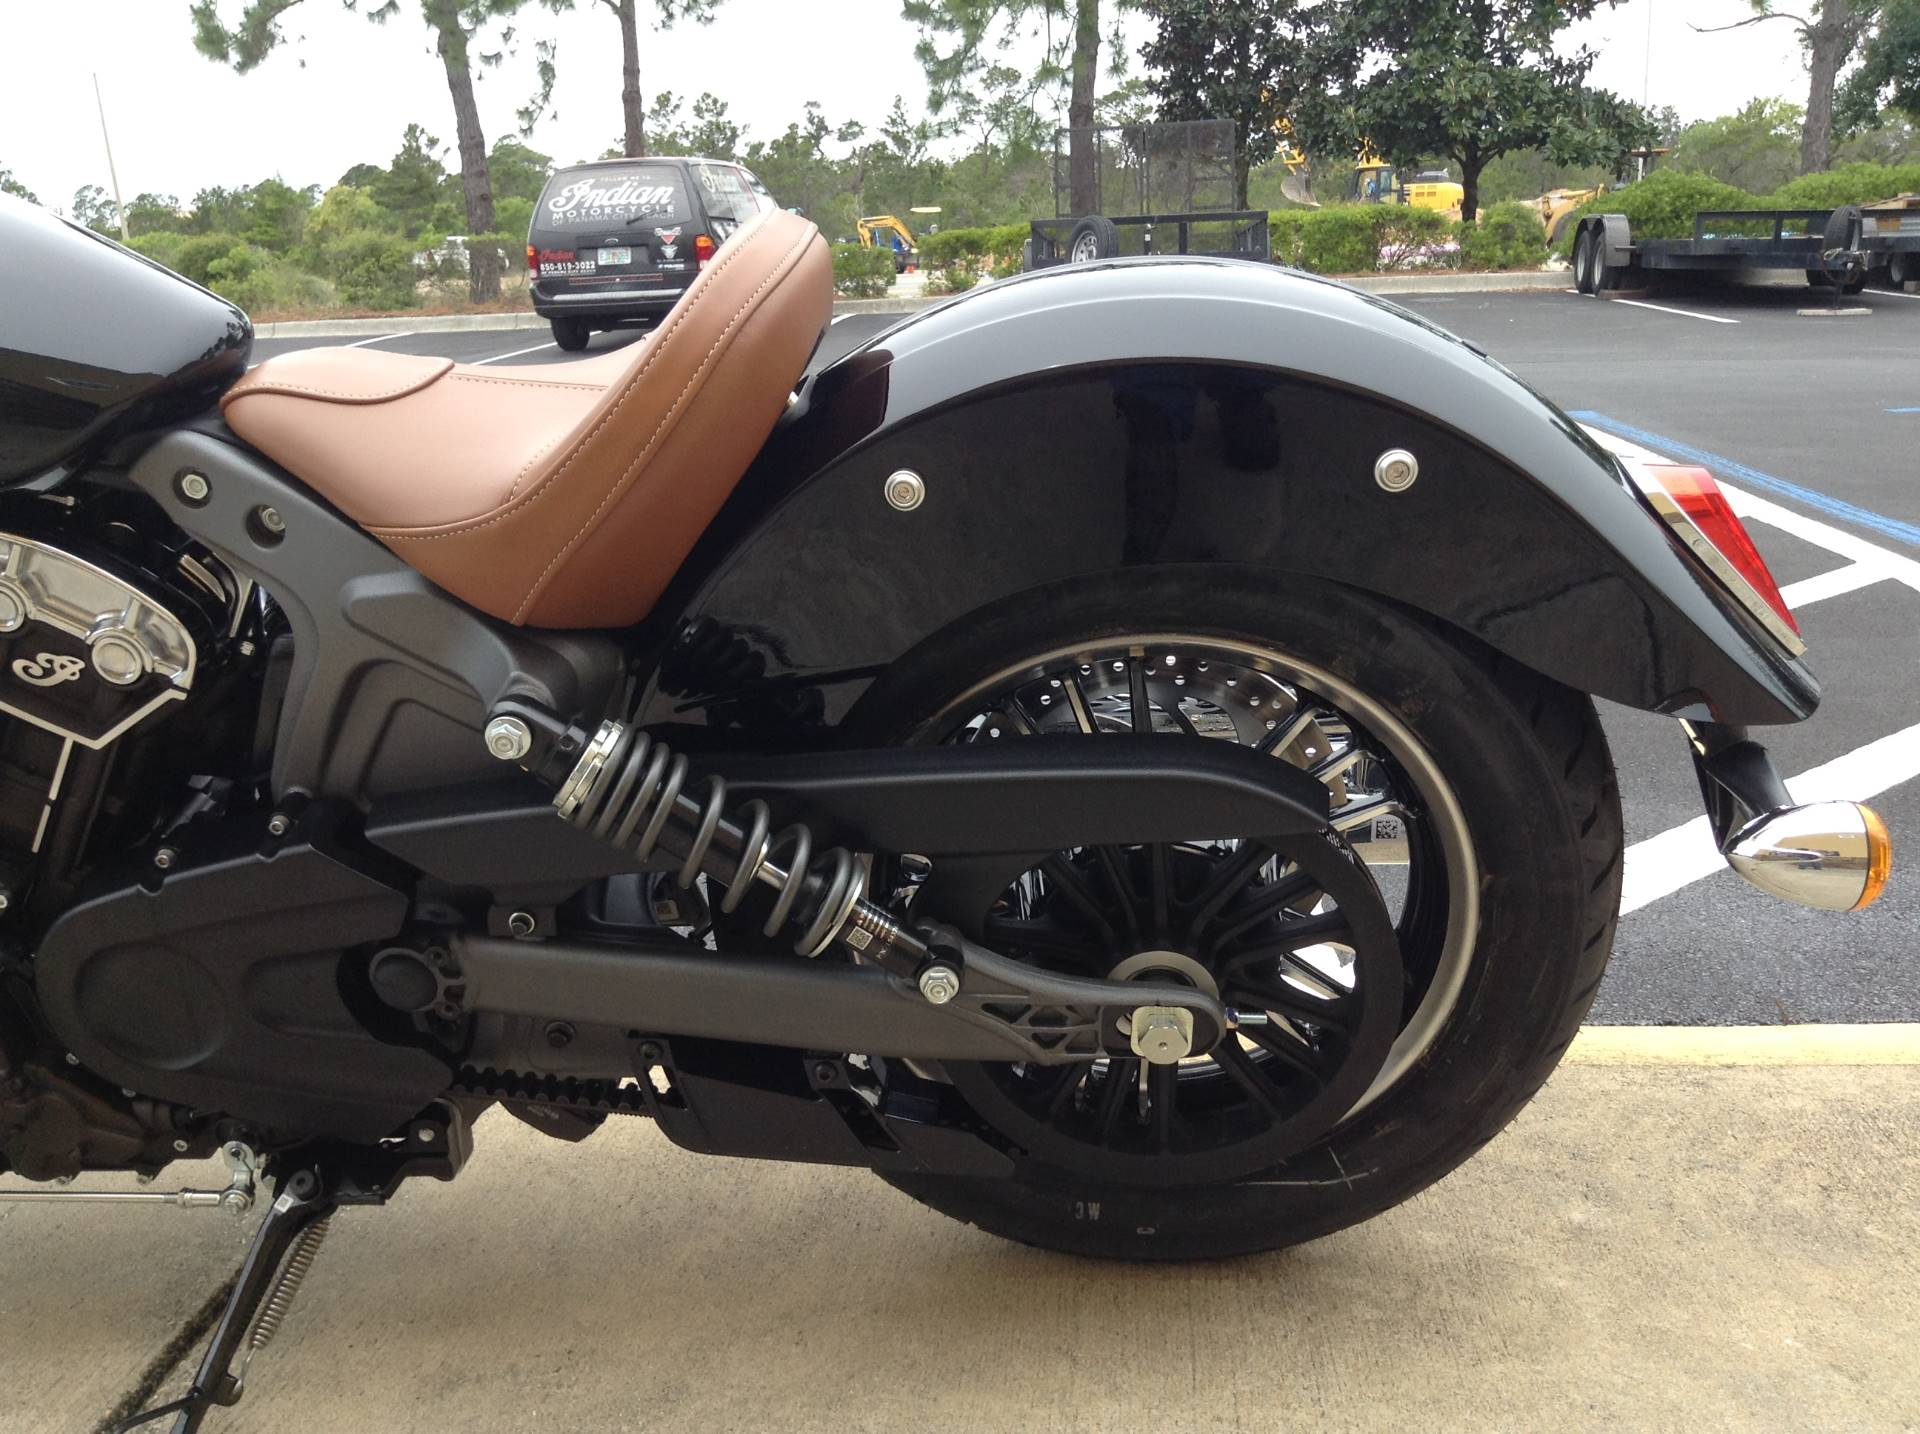 2019 Indian SCOUT in Panama City Beach, Florida - Photo 10